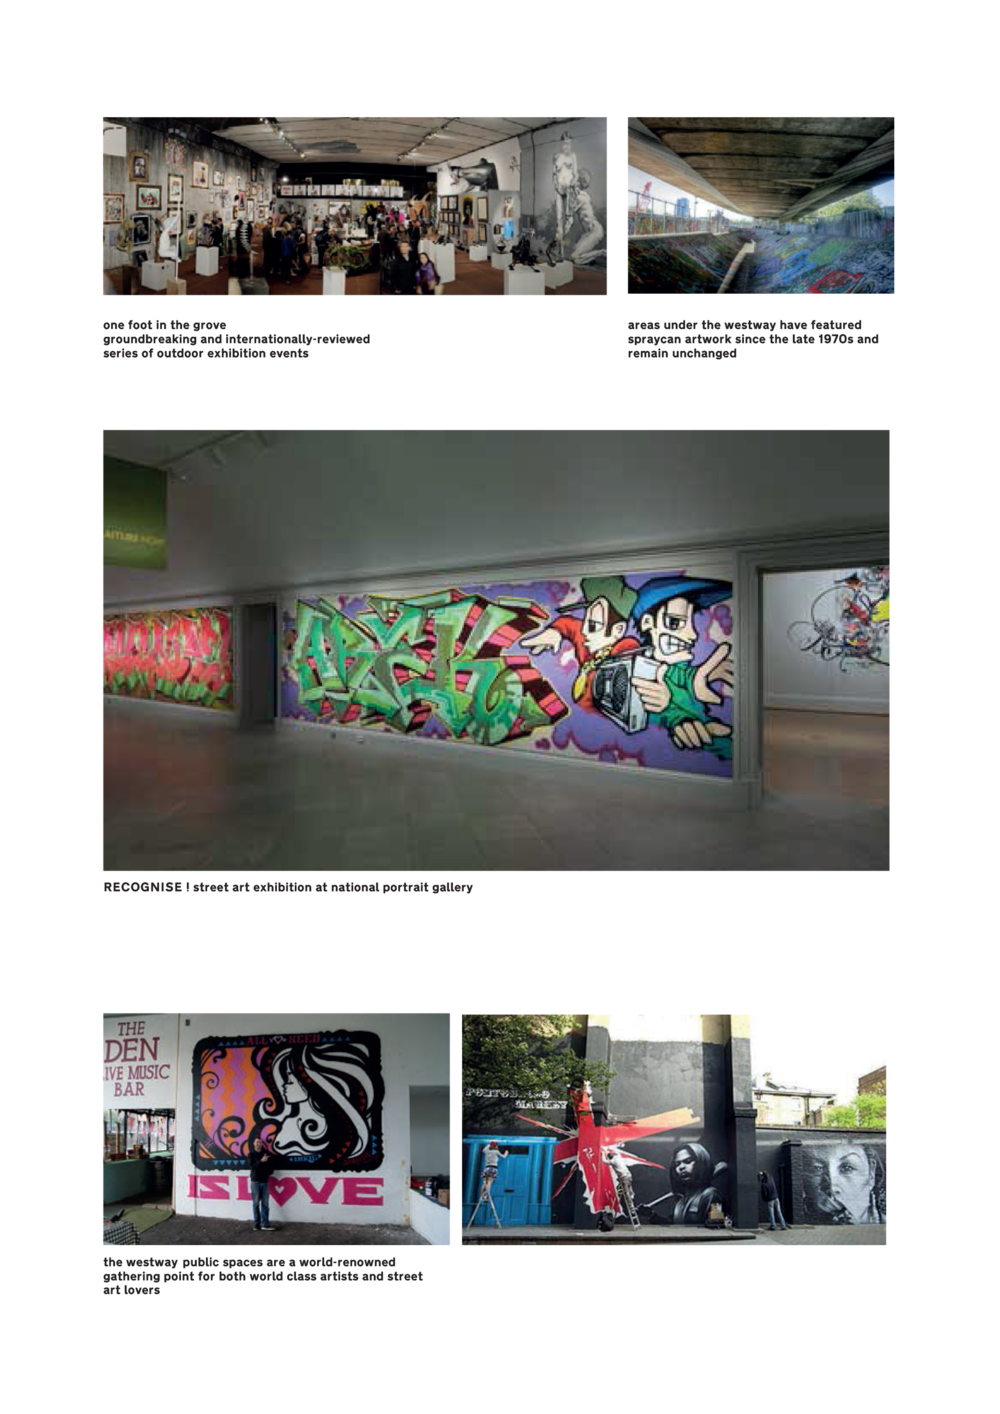 westway-trust-pitch-output-single-A4s_fullbleed_preview_expanded-70.png